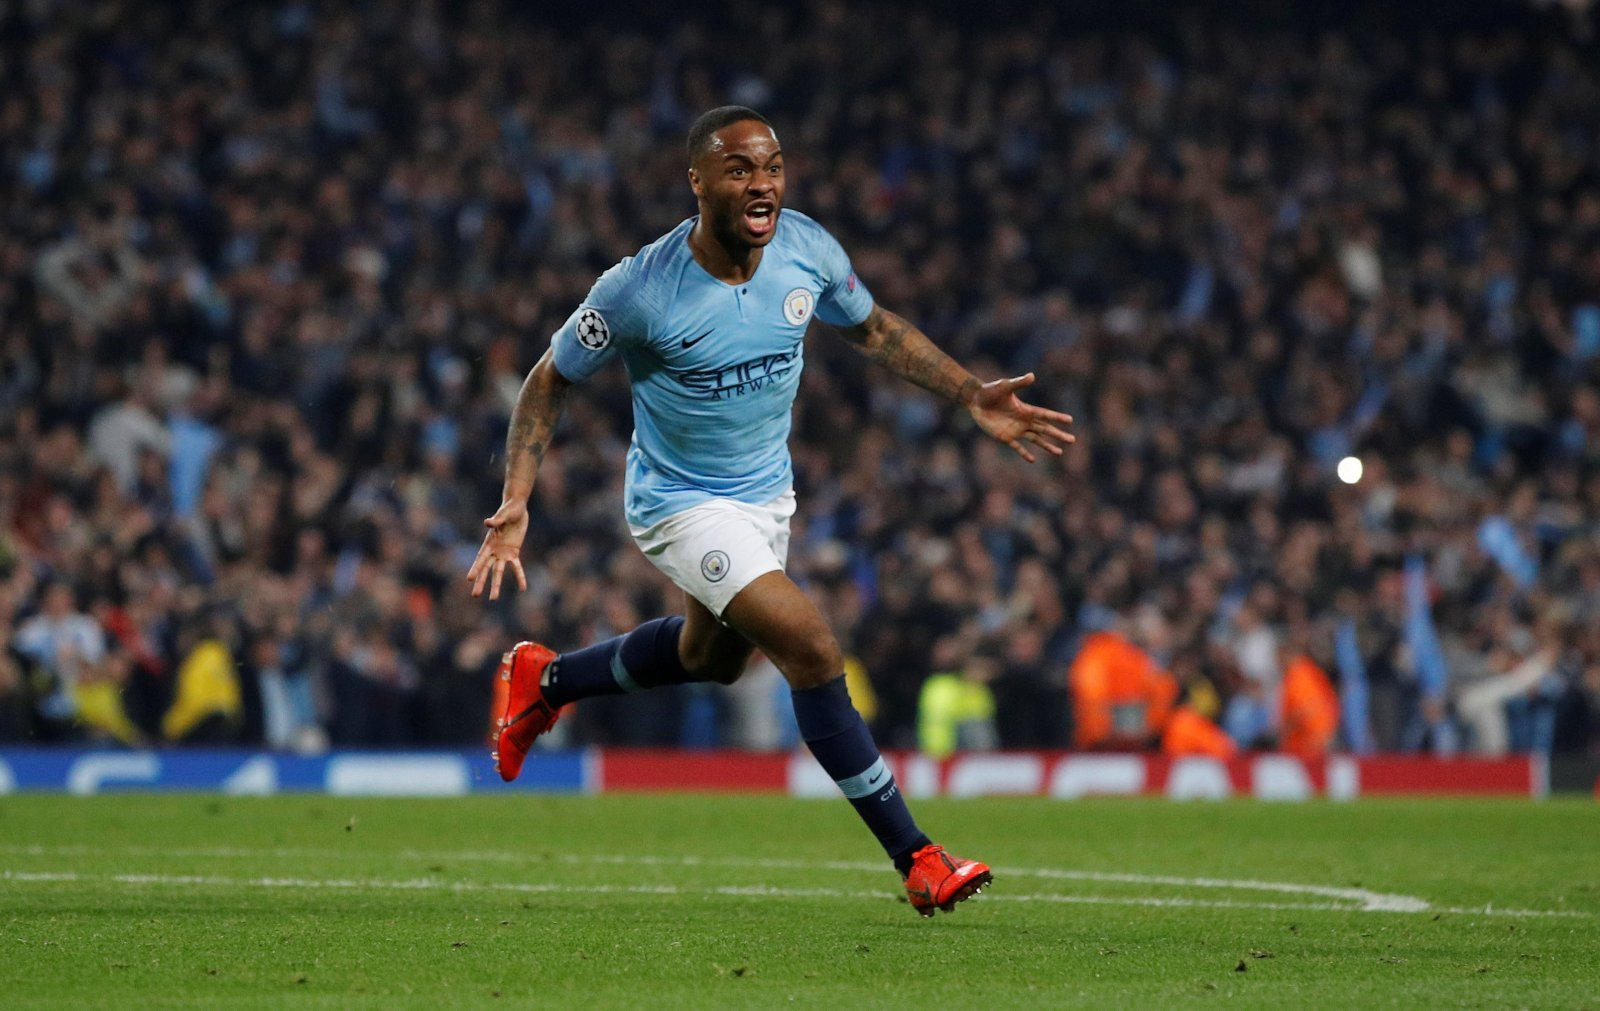 Manchester City: Fans looking forward to many more goals from Raheem Sterling this season